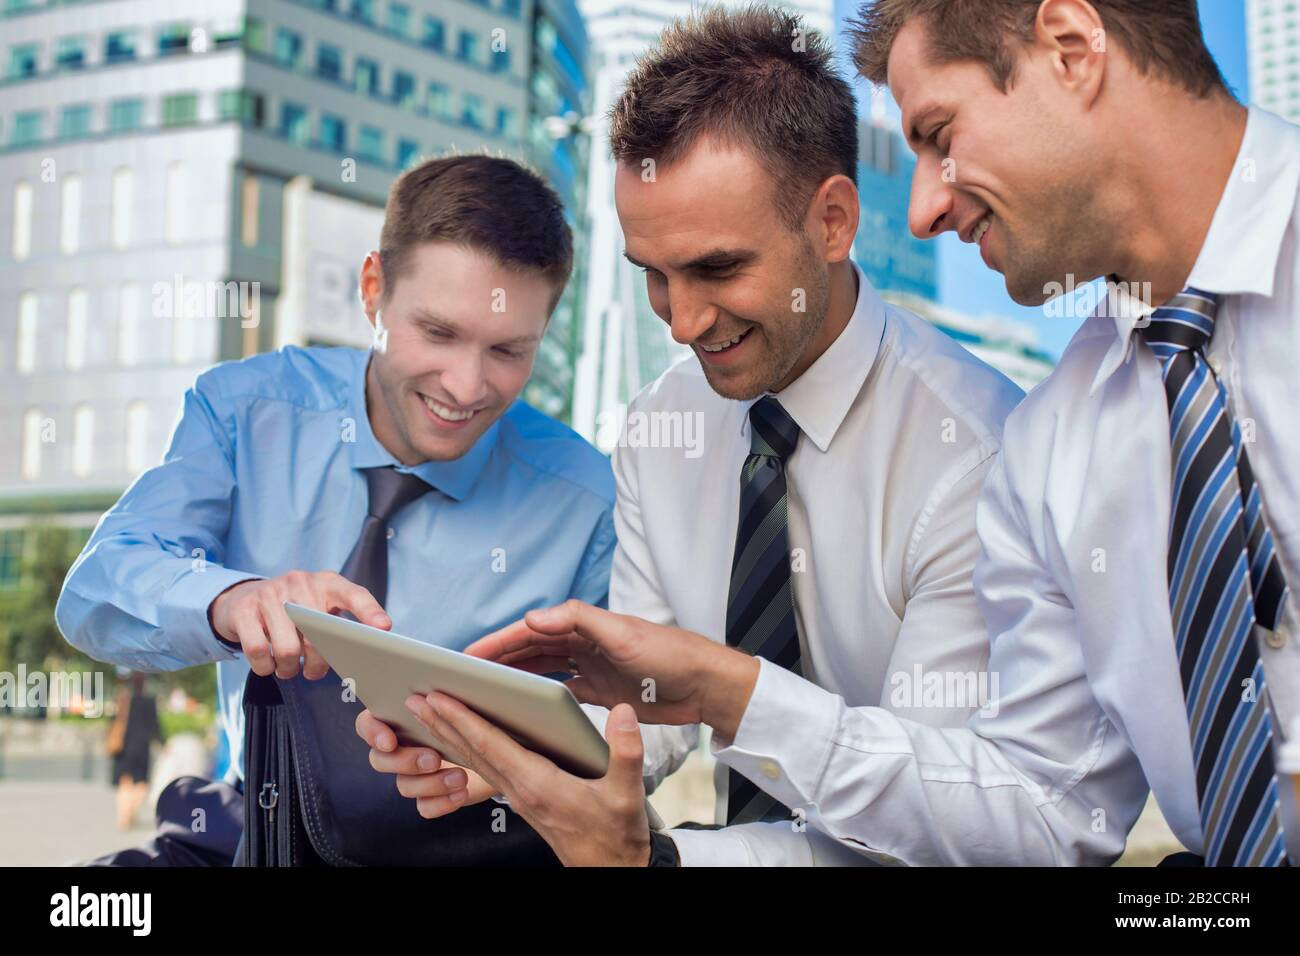 Portrait of handsome businessman showing business plan to the other businessman over digital tablet while sitting Stock Photo